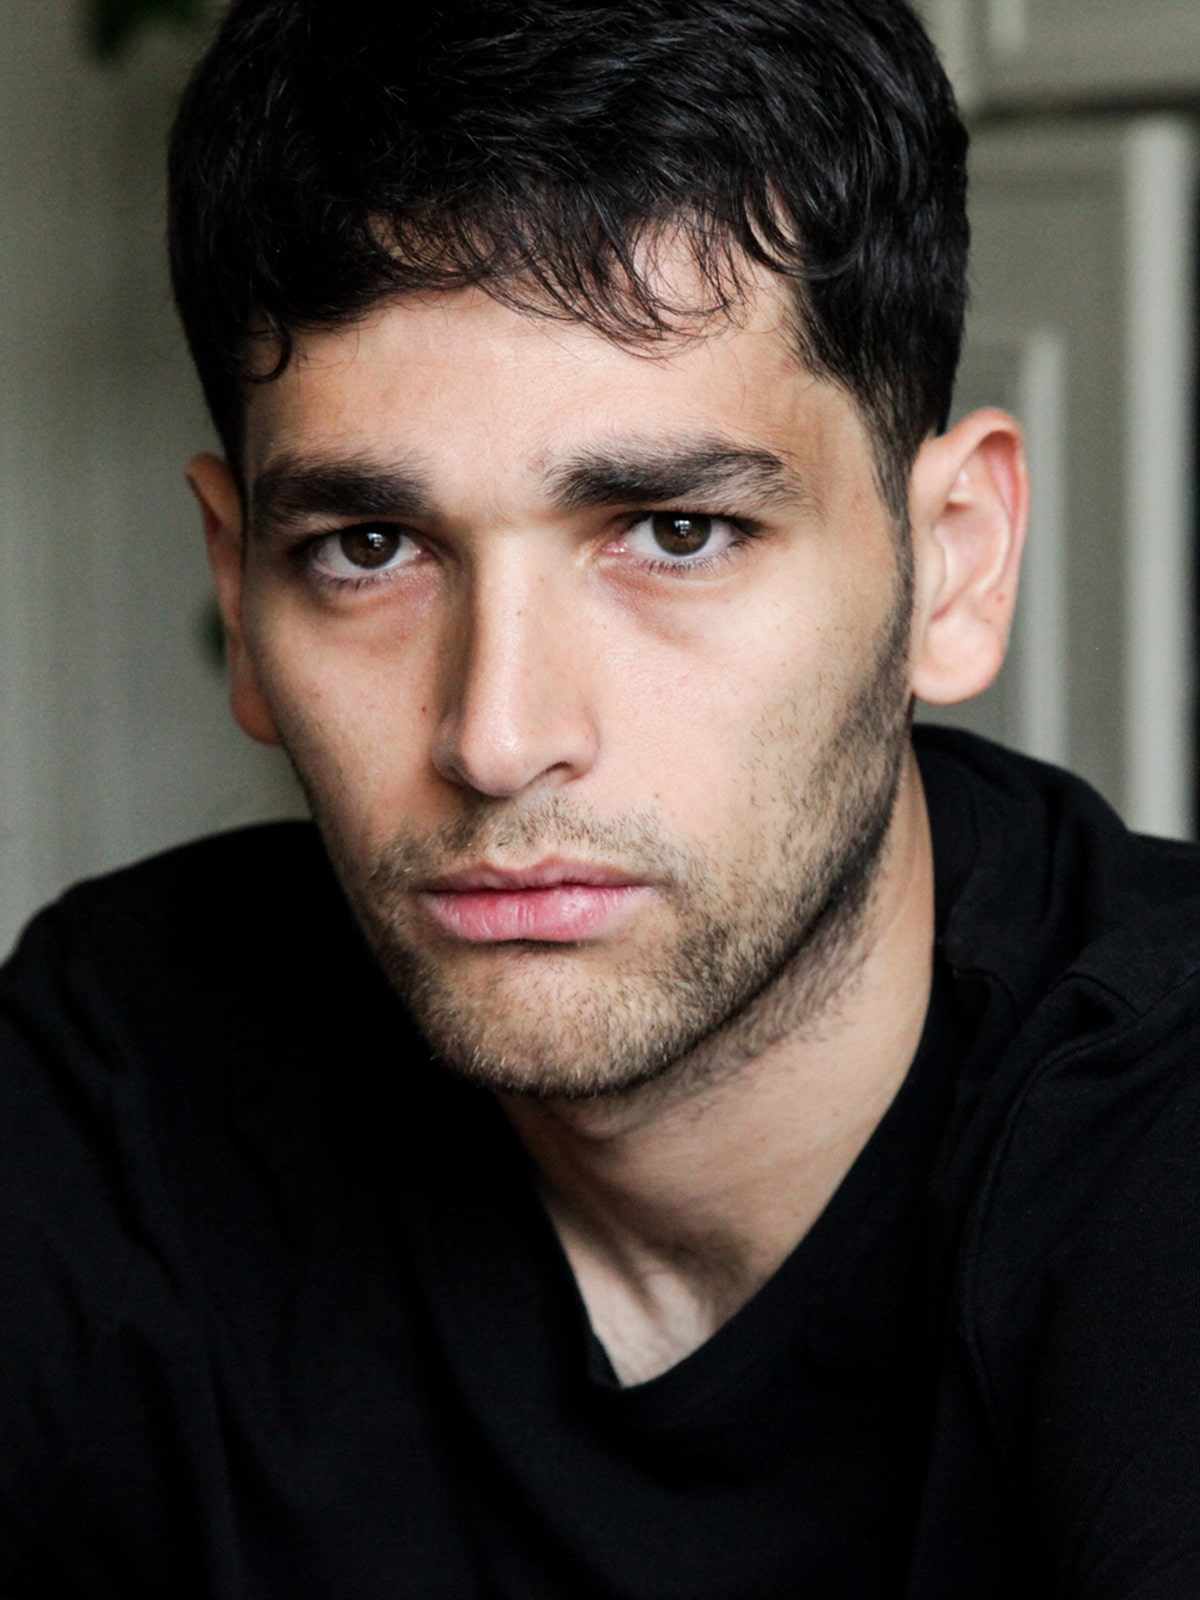 8 Things You Didnt Know About Mehdi Boudina